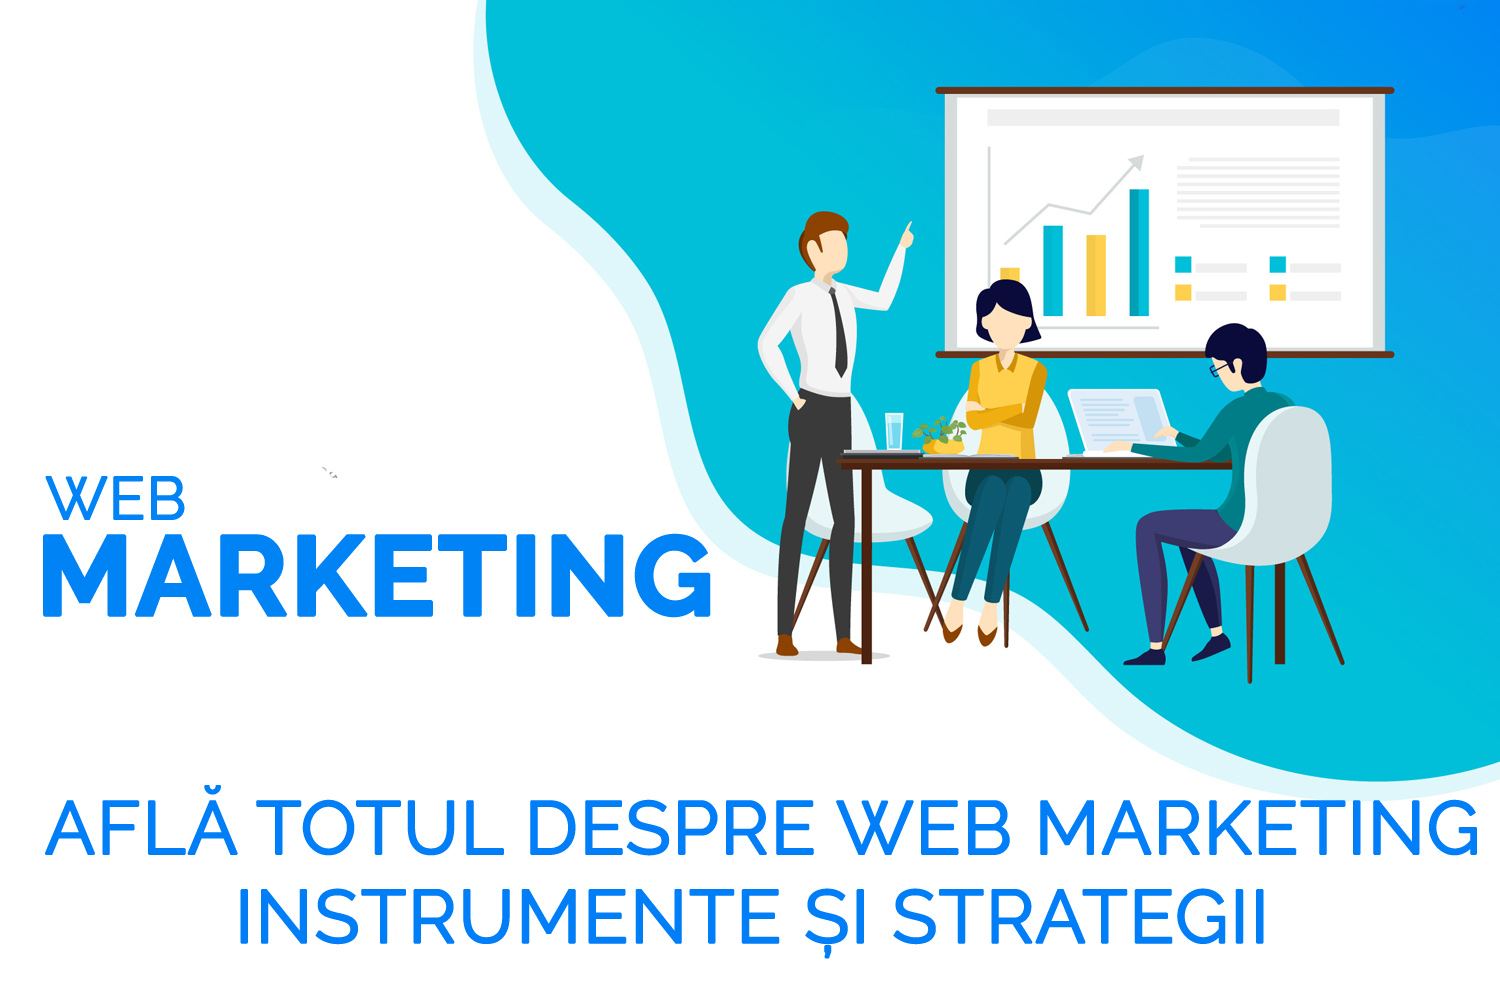 web marketing - marketing digital - markeging online - afla totul despre instrumente si strategii de marketing - agentie marketing timisoara - Inkon Marketing Agency